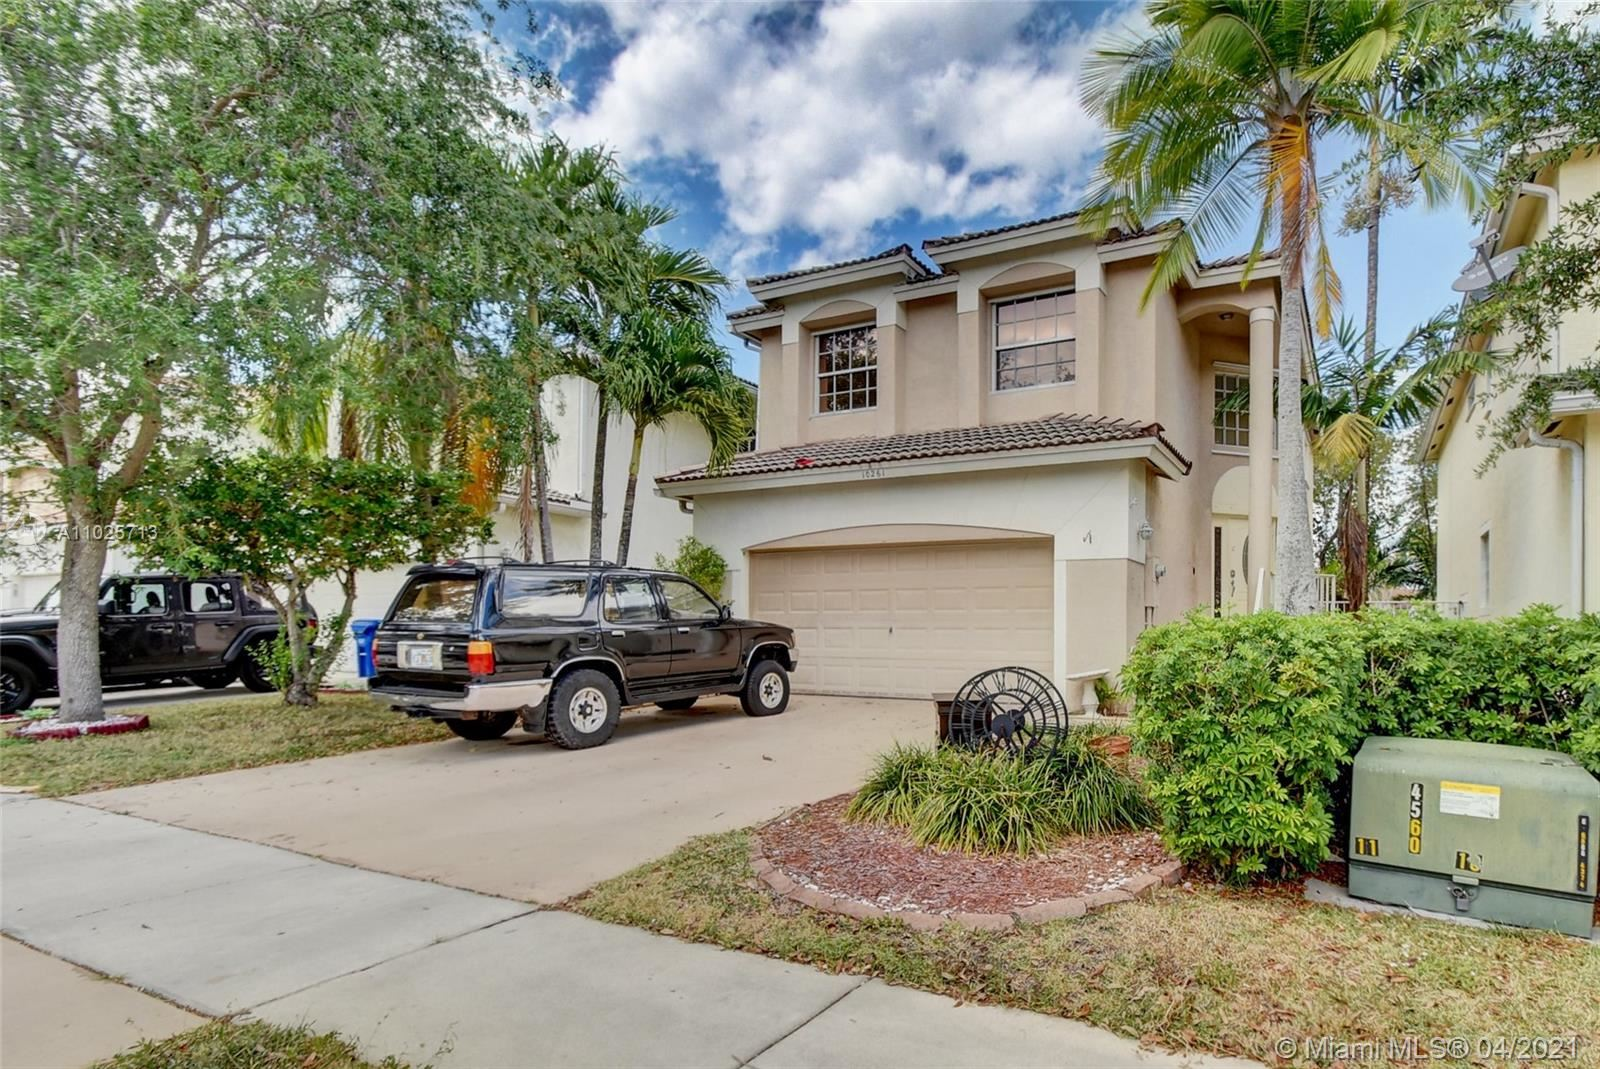 10261 NW 7th St, Coral Springs, FL 33071 - #: A11025713